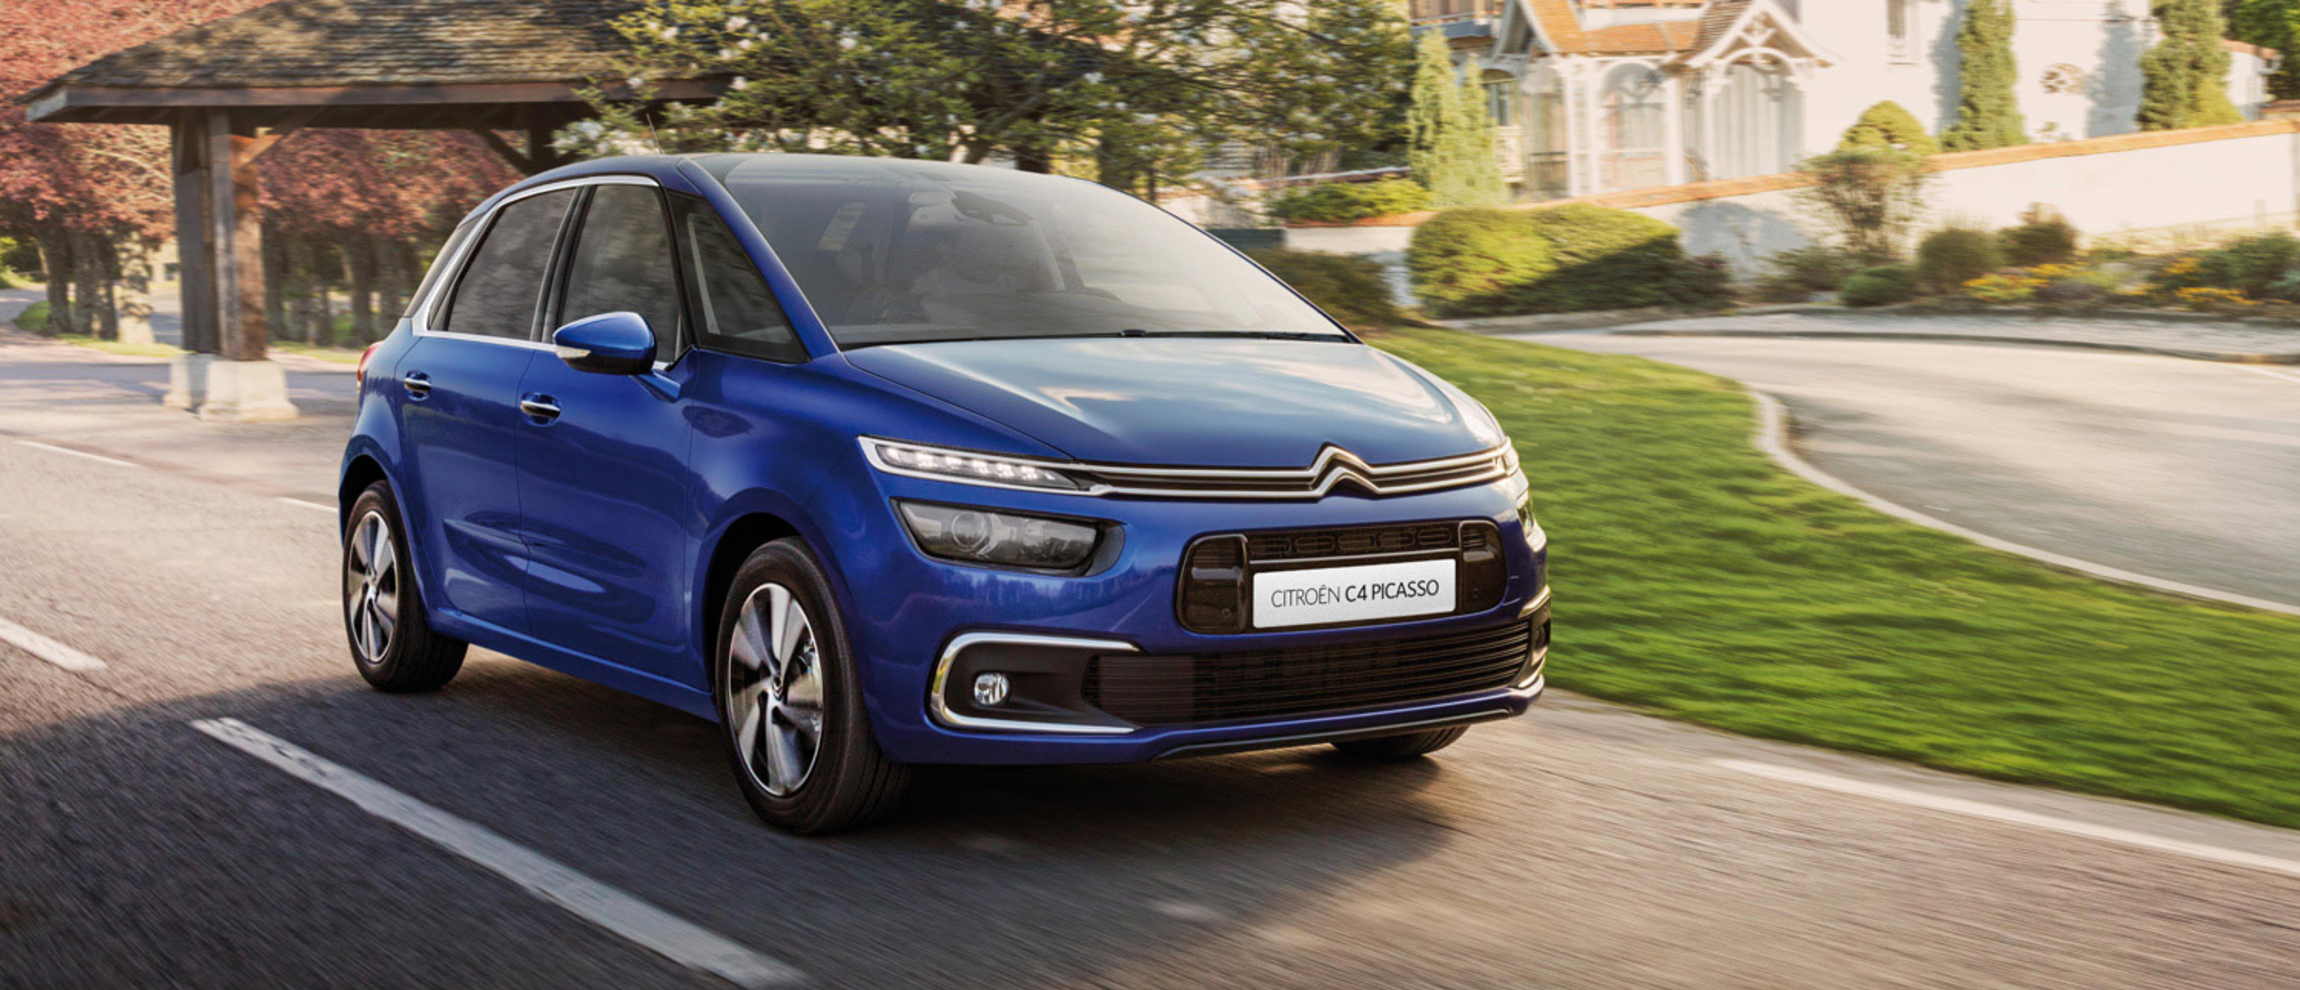 6 Citroën vehicles now support Android Auto, with another on